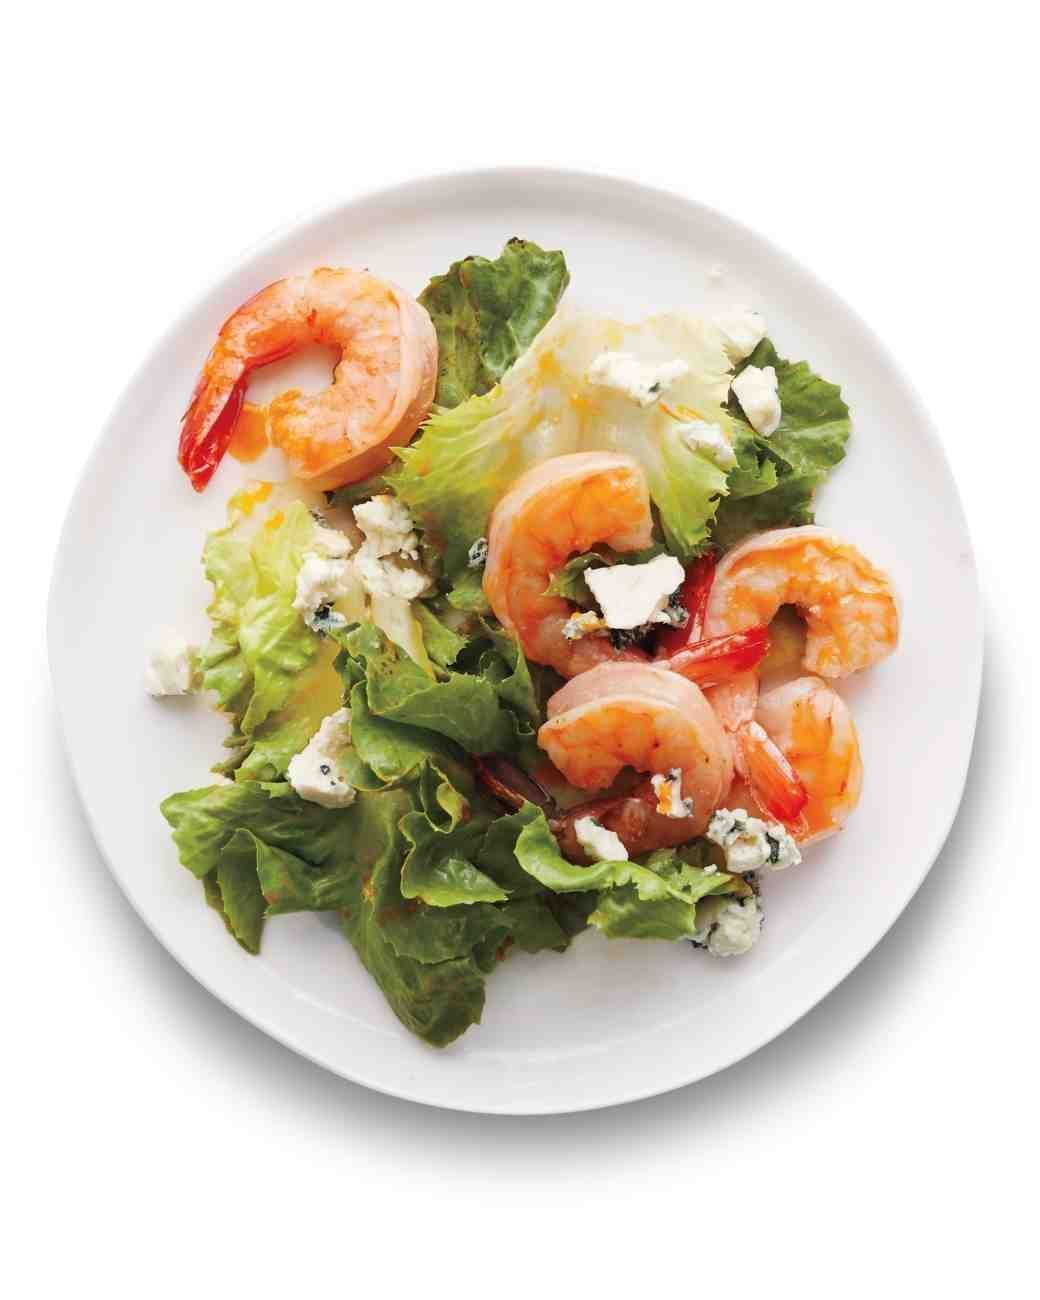 Buffalo Shrimp Salad #buffaloshrimp Buffalo Shrimp Salad #buffaloshrimp Buffalo Shrimp Salad #buffaloshrimp Buffalo Shrimp Salad #buffaloshrimp Buffalo Shrimp Salad #buffaloshrimp Buffalo Shrimp Salad #buffaloshrimp Buffalo Shrimp Salad #buffaloshrimp Buffalo Shrimp Salad #buffaloshrimp